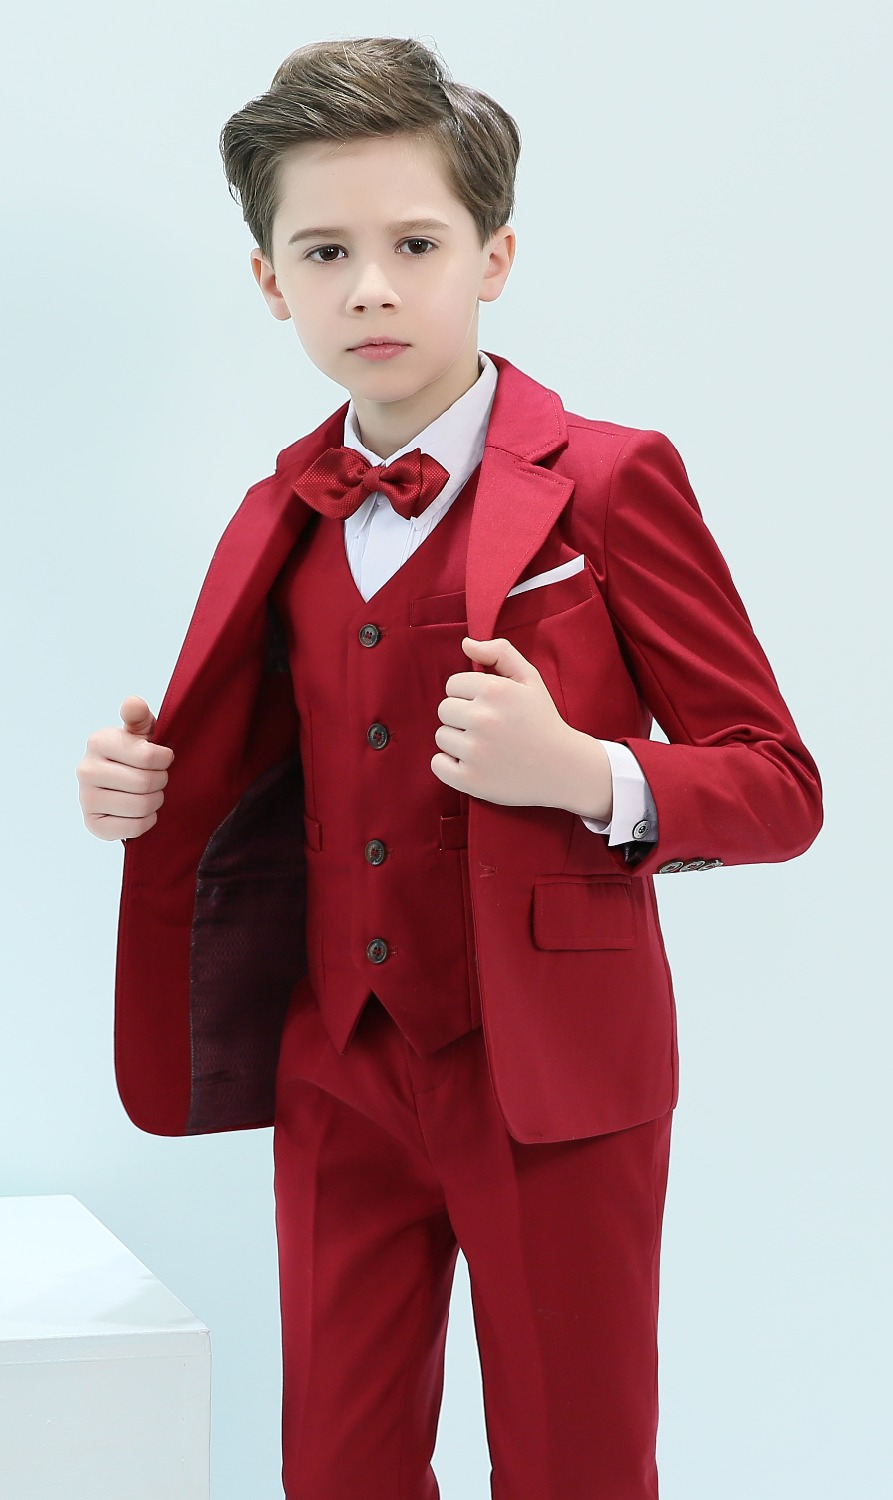 Boys Suits 5 Piece 3 Color Slim Fit Ring Bearer Suit For Boys Formal Classic Costume Weddings цена 2017